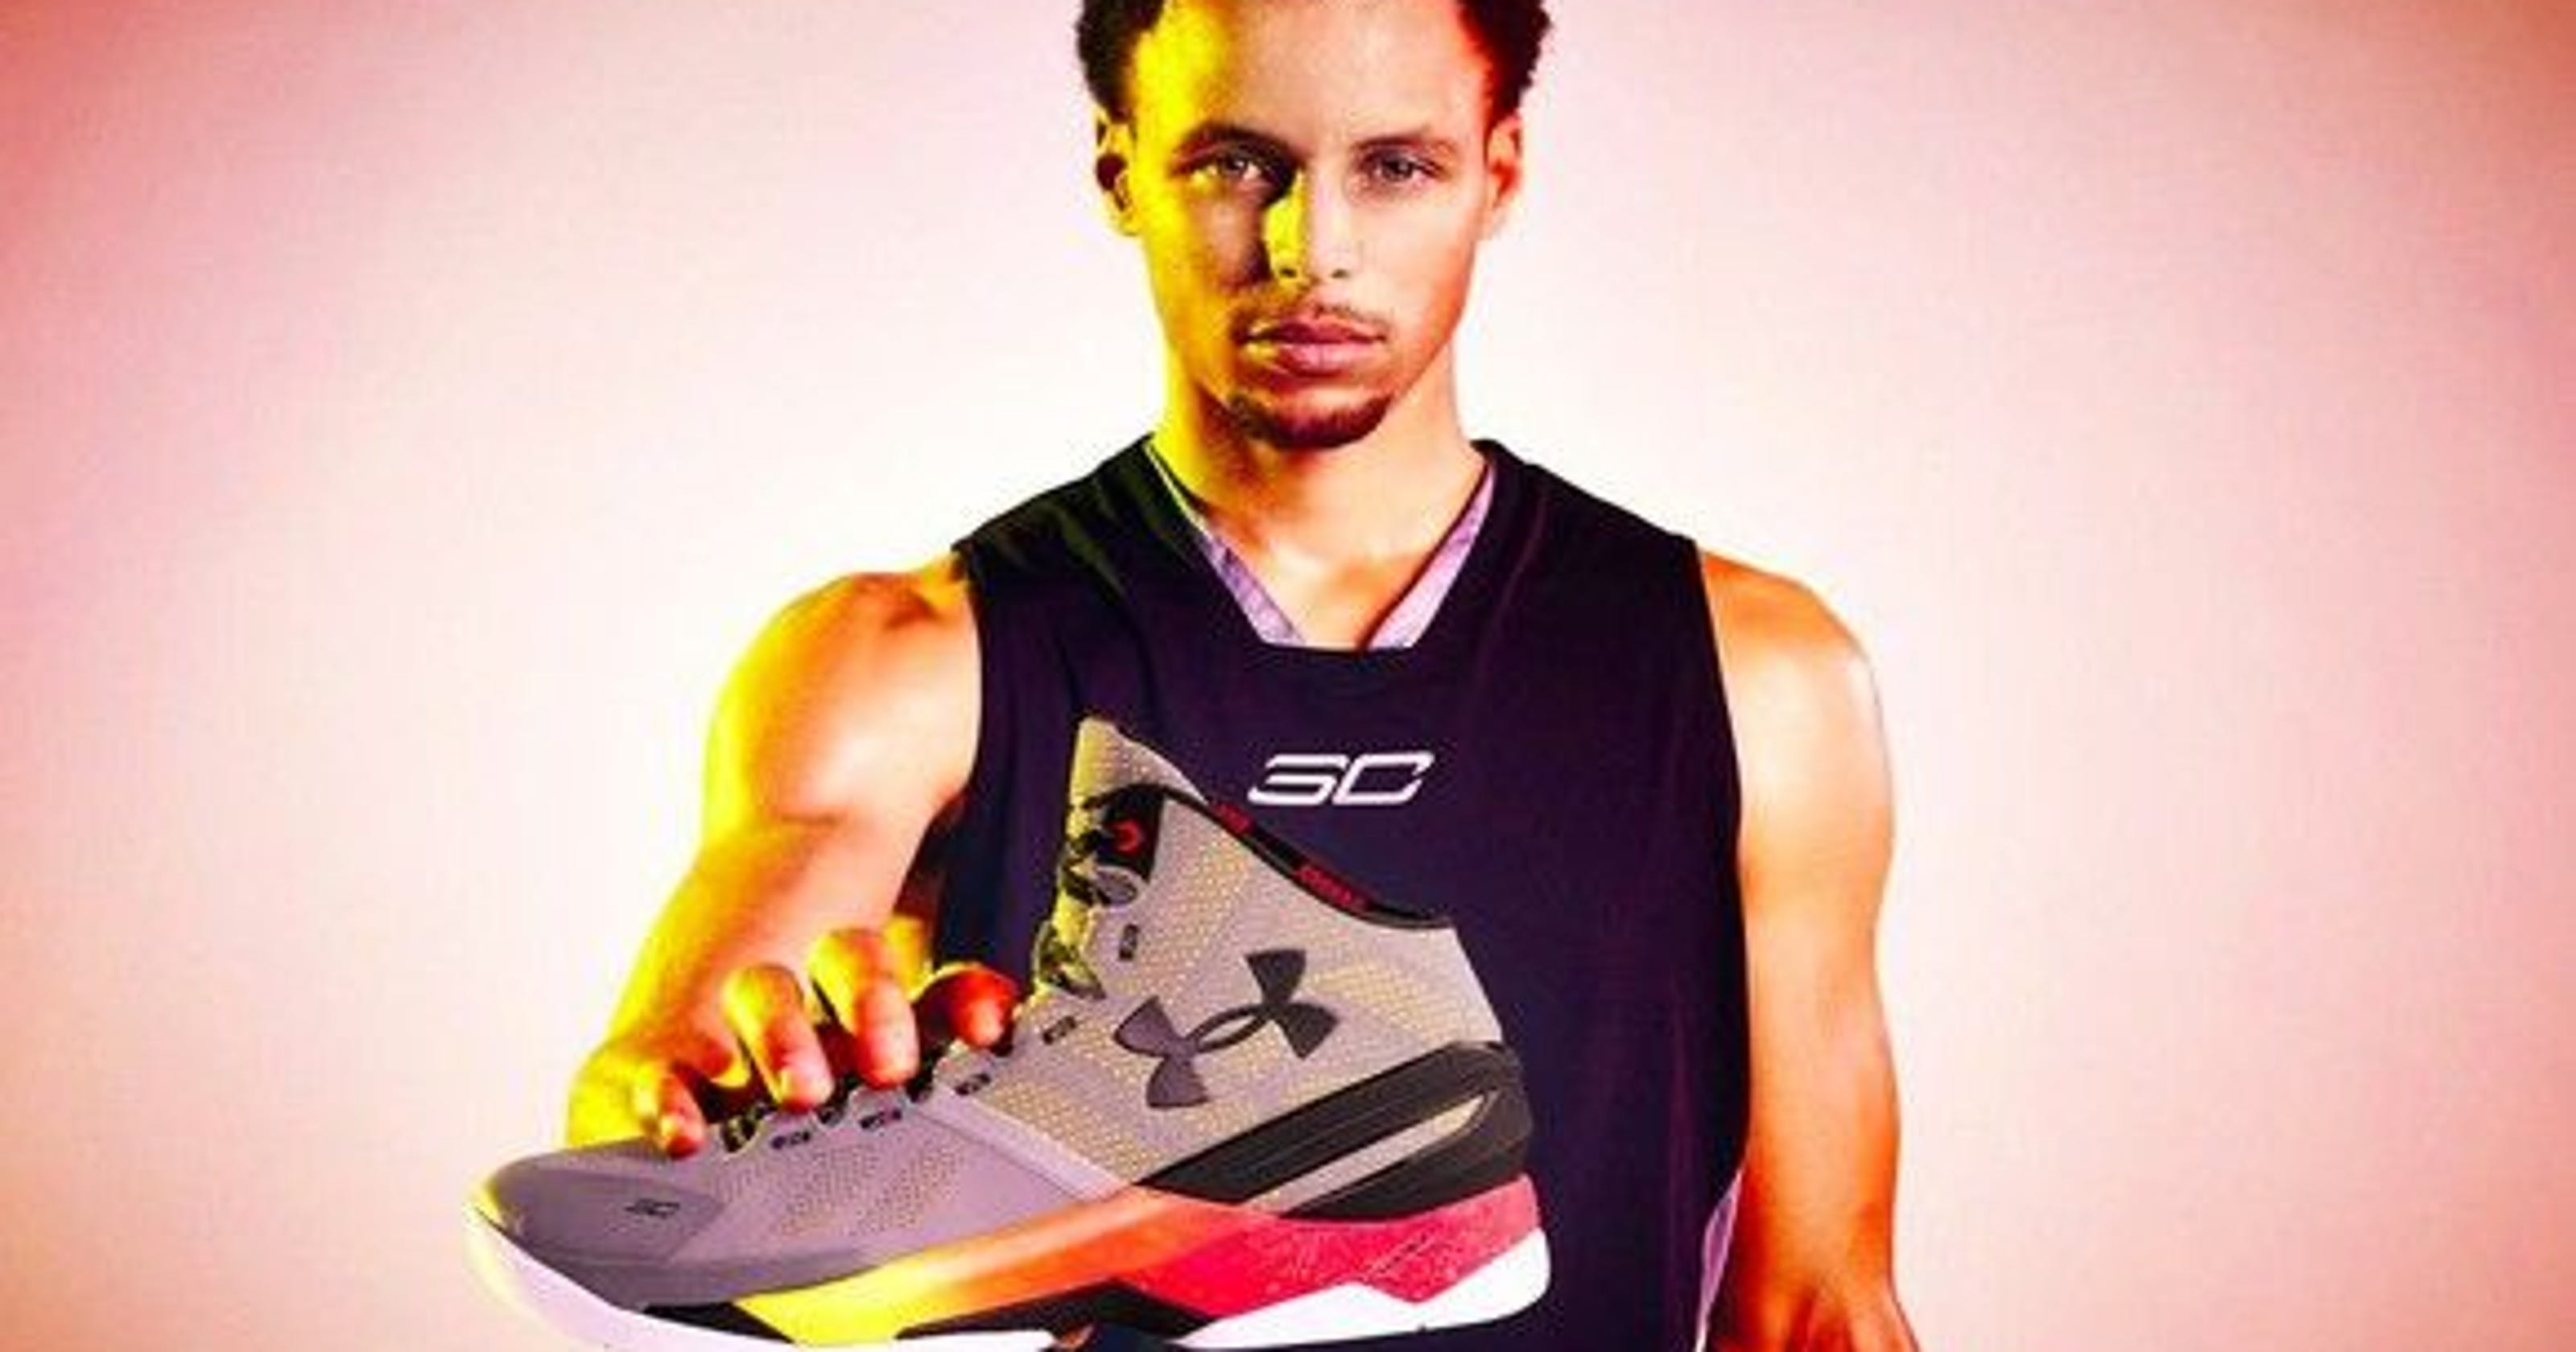 4e359290 Waning interest in Steph Curry shoes? Under Armour stock slumps